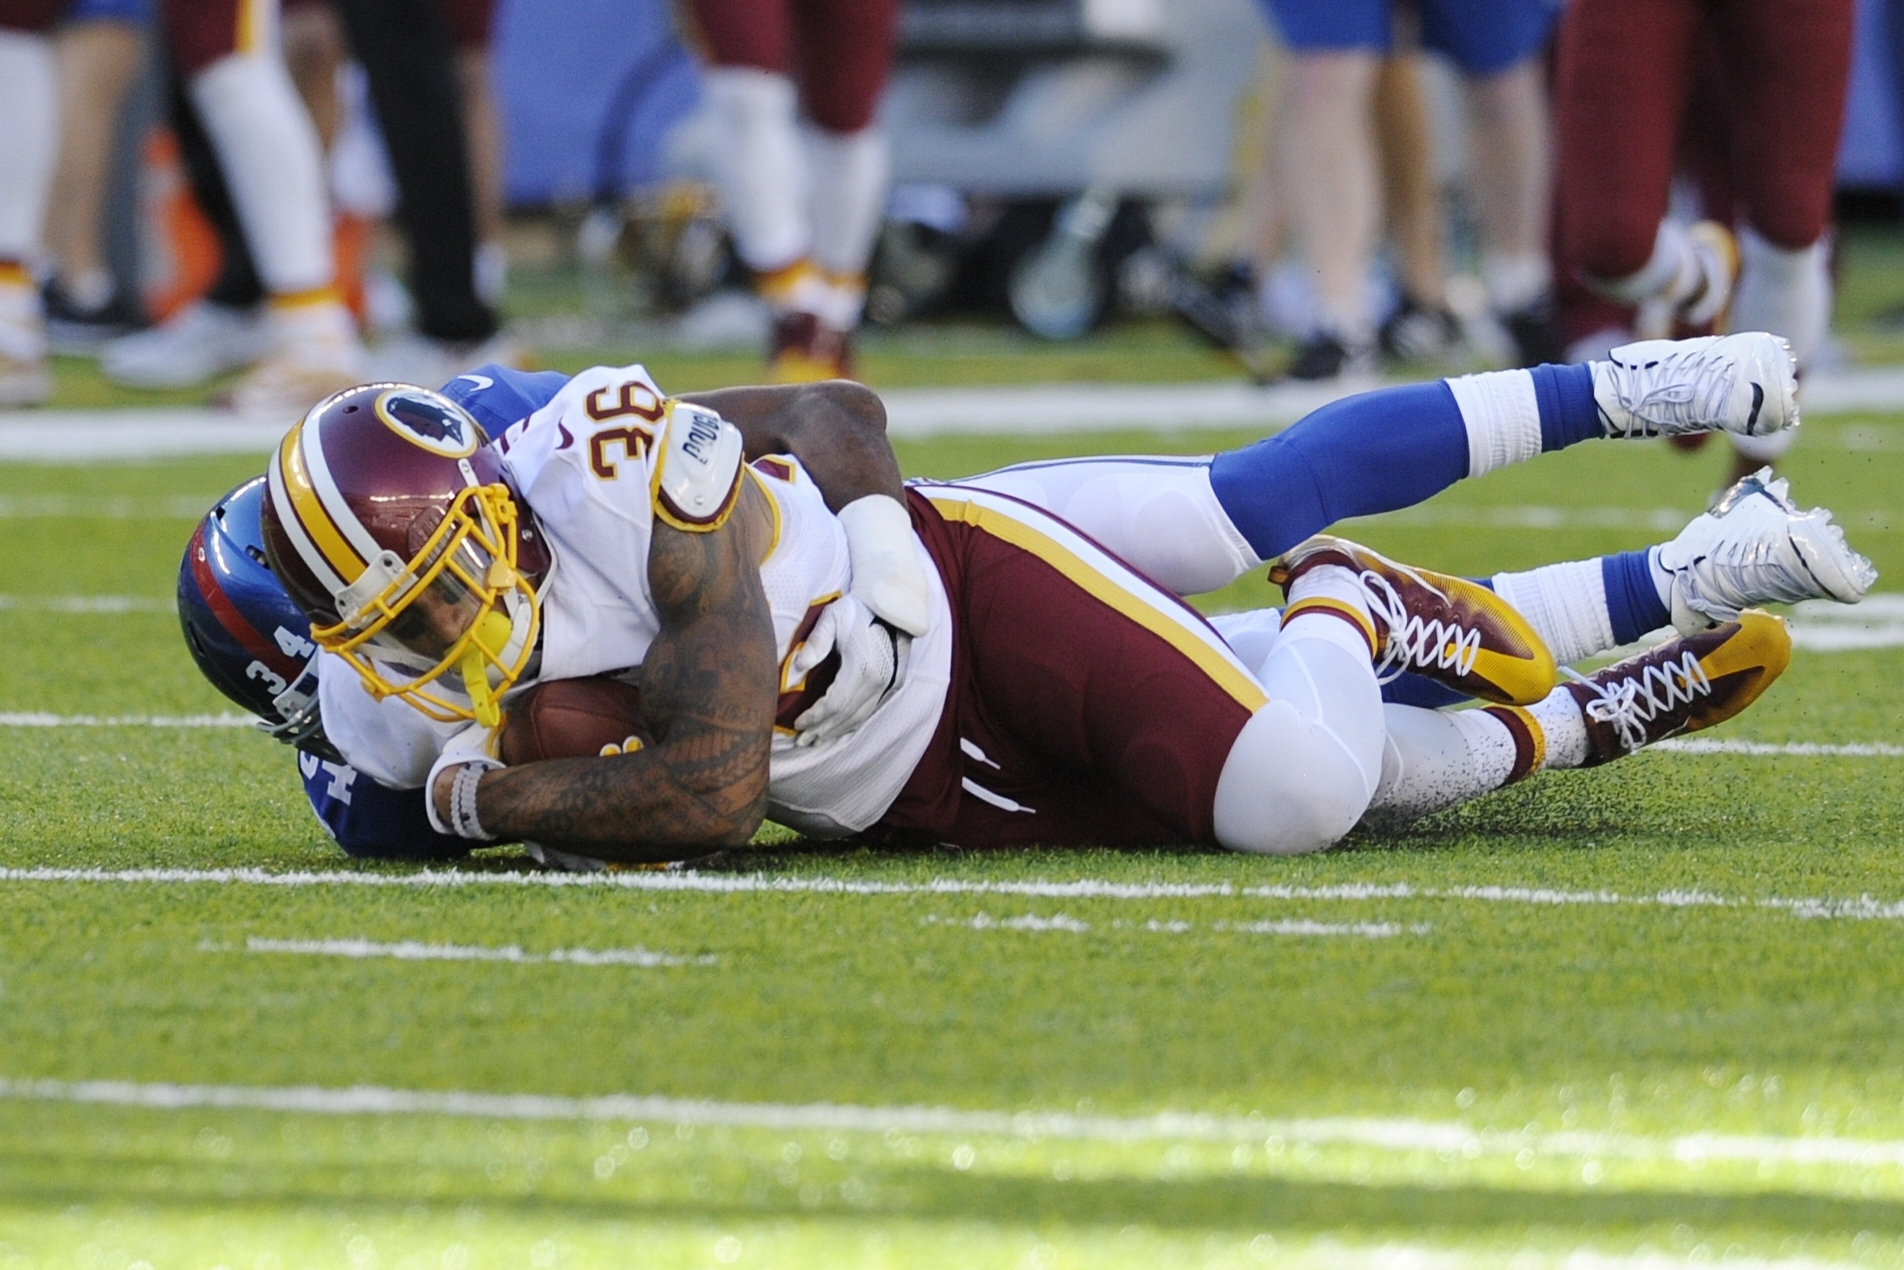 Washington Redskins defensive back Su'a Cravens (36) is tackled by New York Giants' Shane Vereen (34) after intercepting a pass during the second half of an NFL football game Sunday, Sept. 25, 2016, in East Rutherford, N.J. (AP Photo/Bill Kostroun)